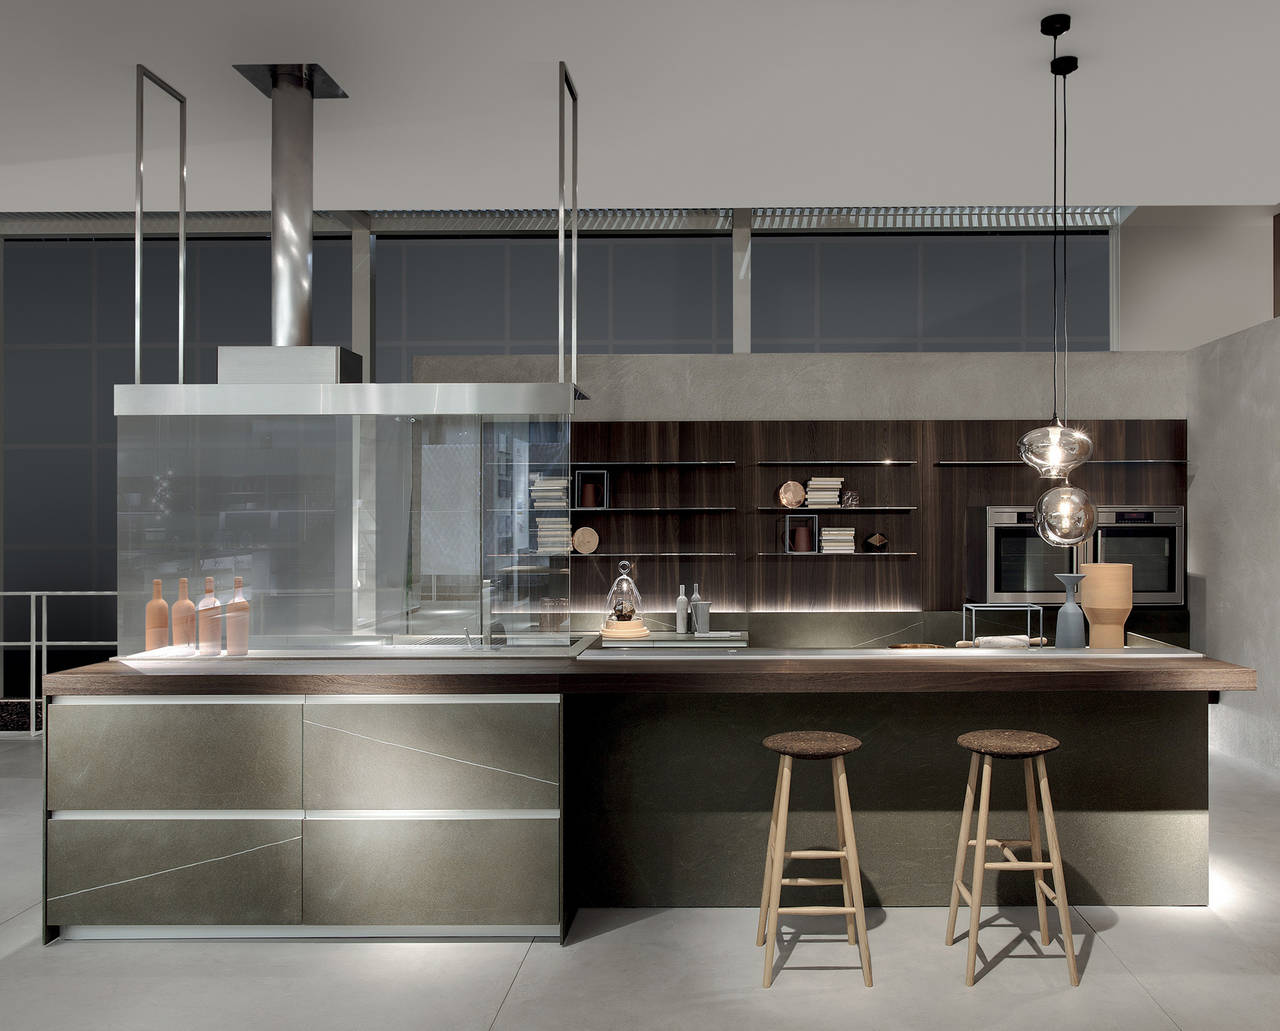 Livingkitchen 2015 focus cucine ambiente cucina for Design cucina